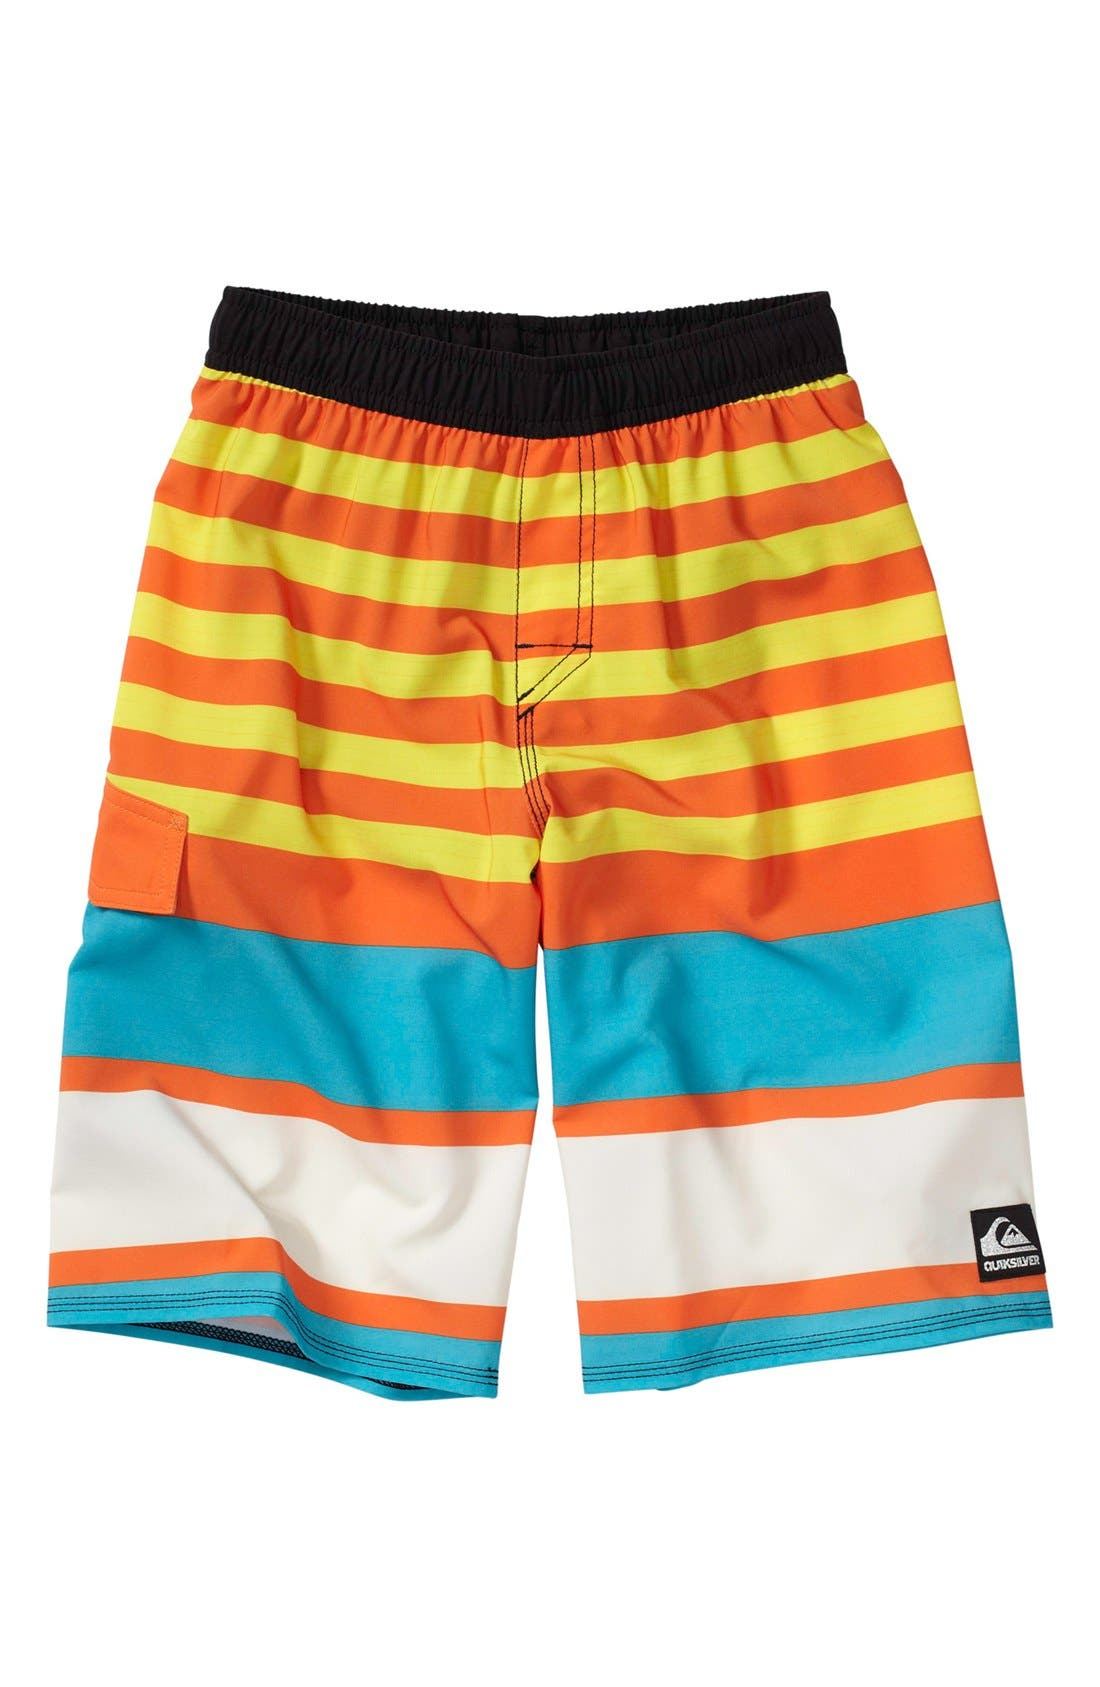 Main Image - Quiksilver 'Why Can't You' Volley Shorts (Little Boys)